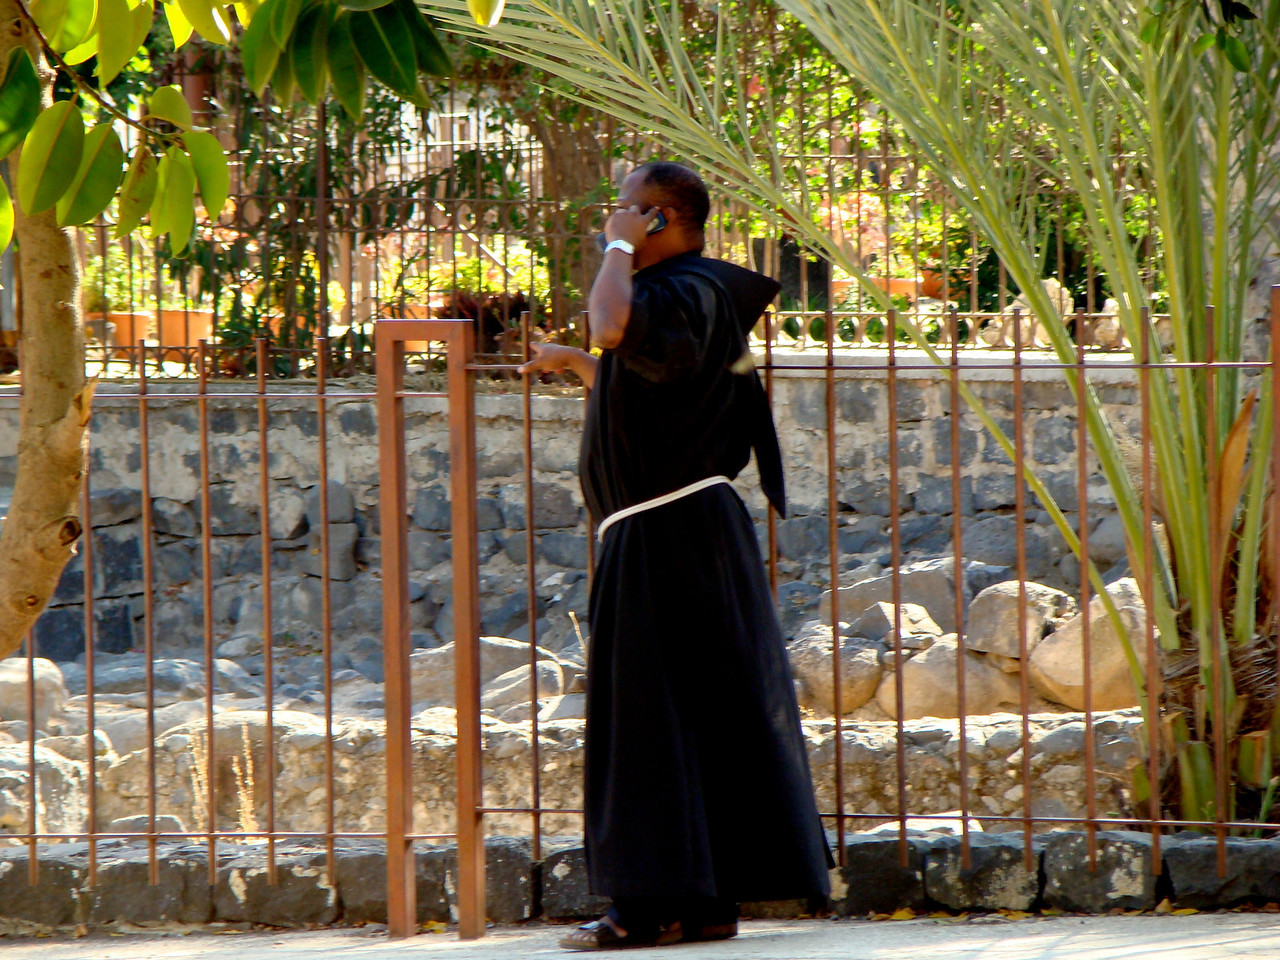 Priest on Cell Phone at Capharnaum